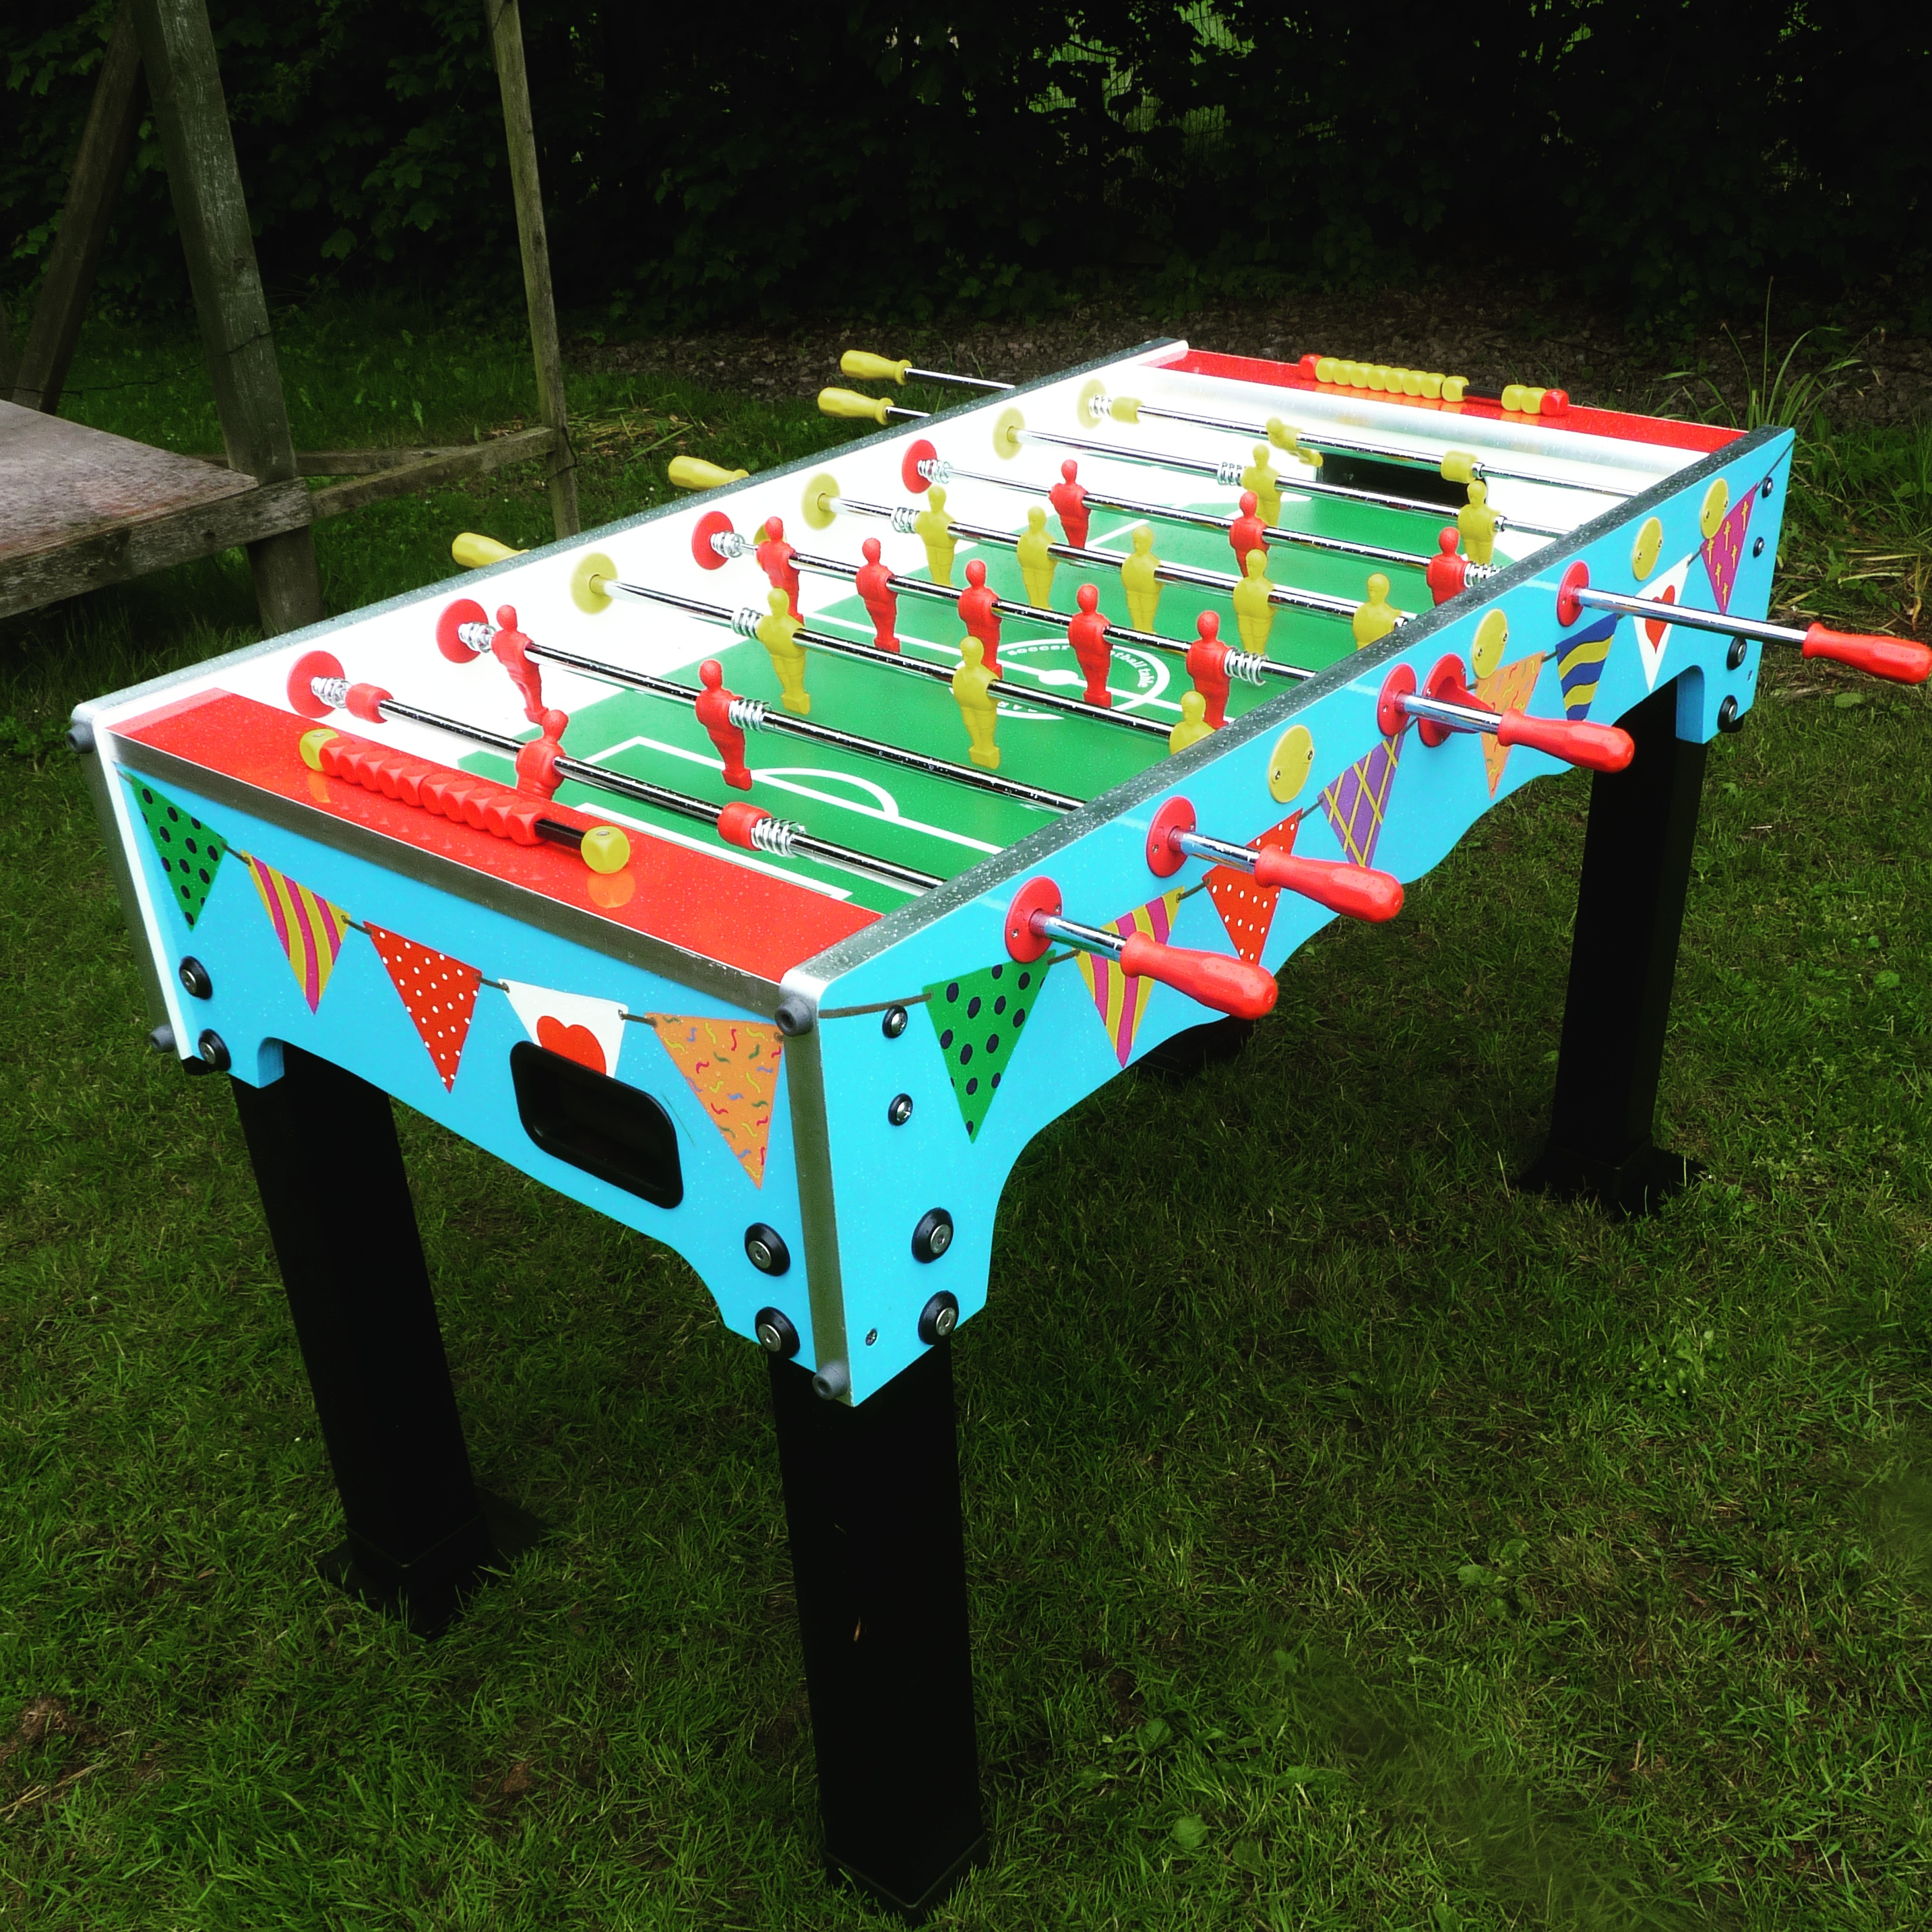 Table football hire hereford games · garden game hire gloucestershire